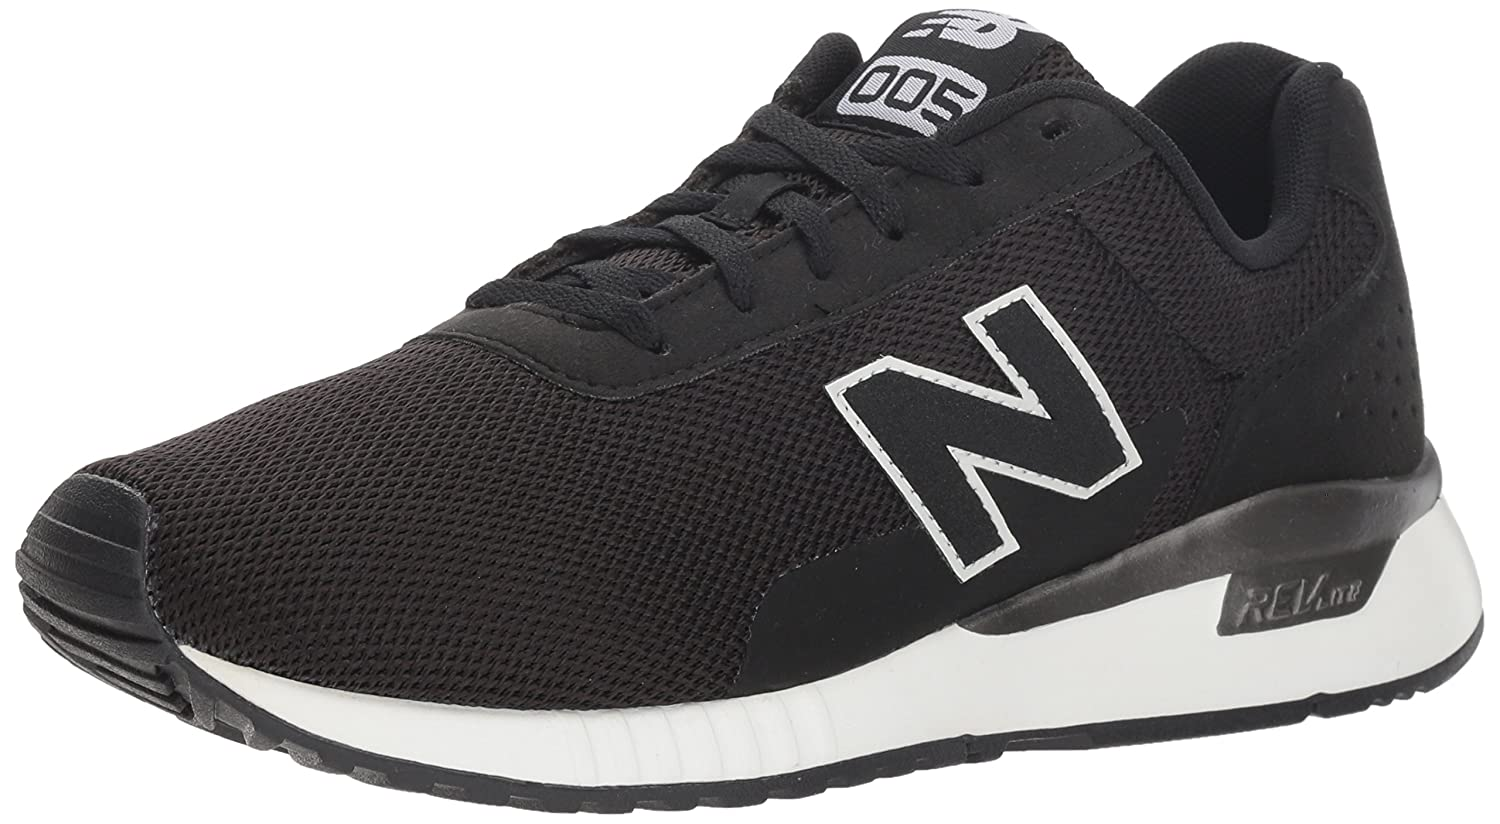 New Balance Women's 5v2 Sneaker B075R7N6BF 7.5 B(M) US|Black